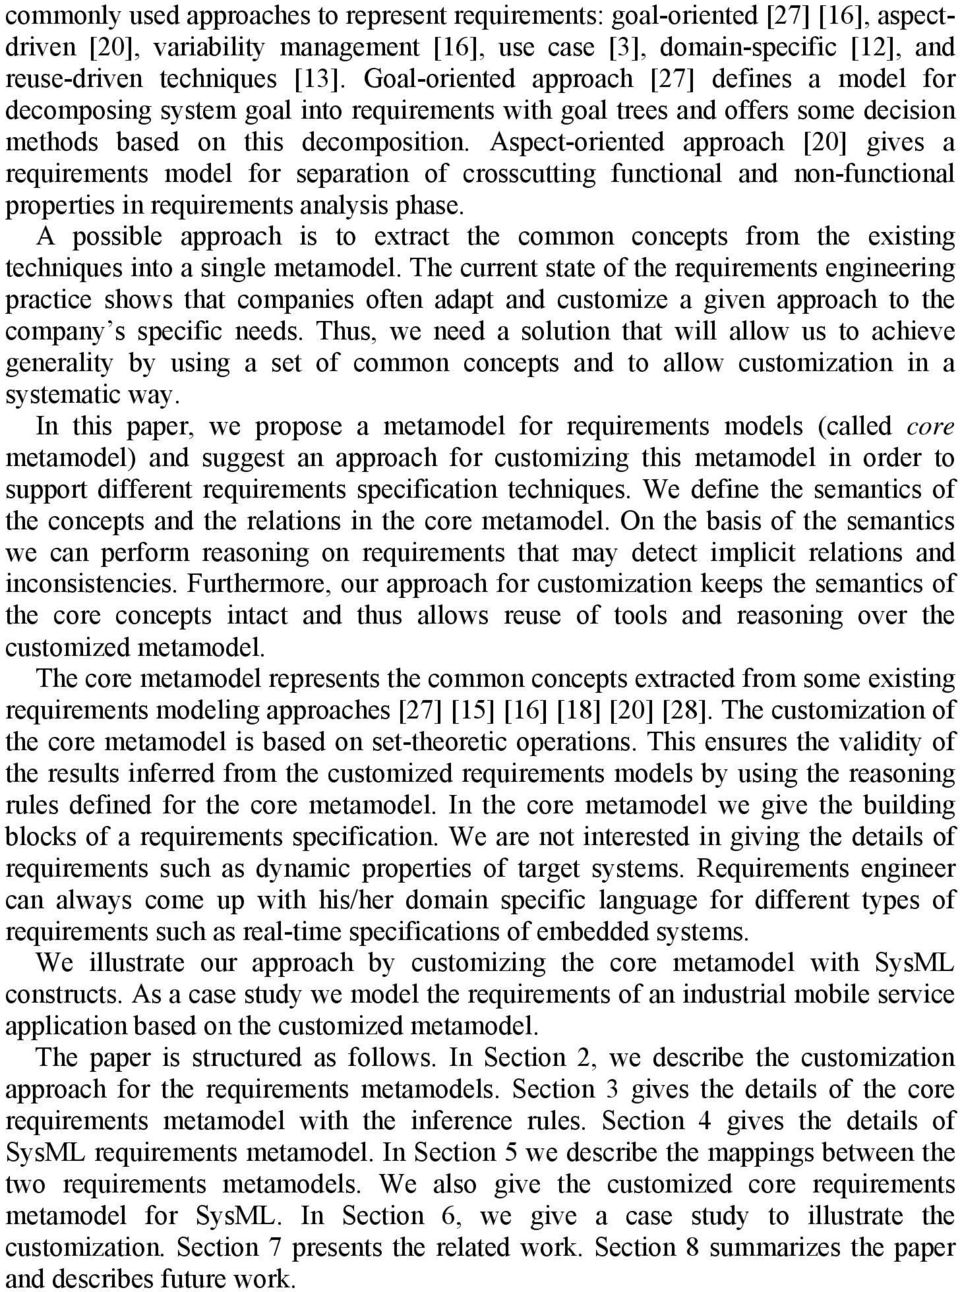 Aspect-oriented approach [20] gives a requirements model for separation of crosscutting functional and non-functional properties in requirements analysis phase.